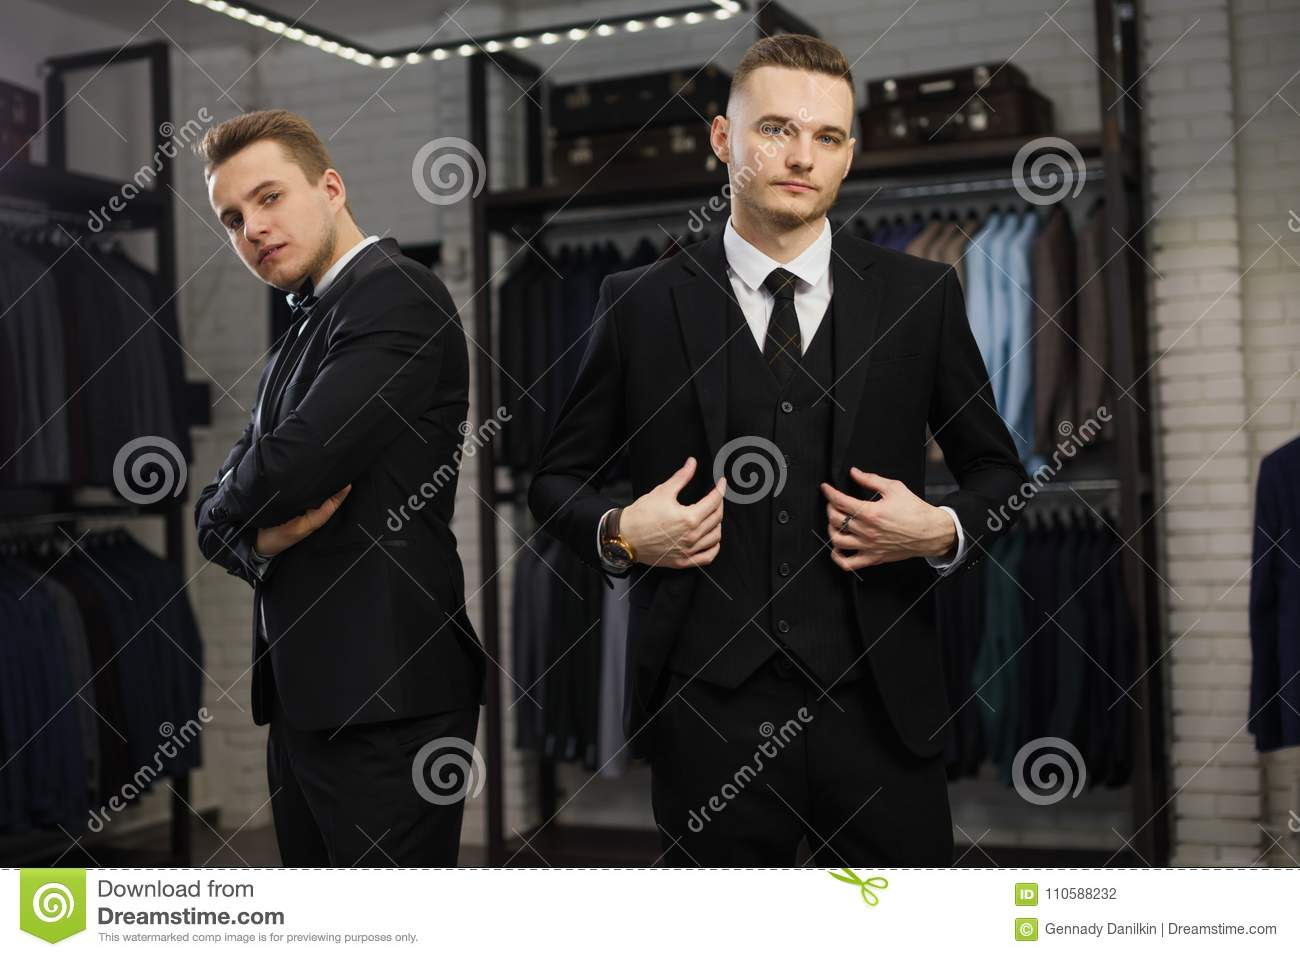 Two gay friends in classic vest against row of suits in shop